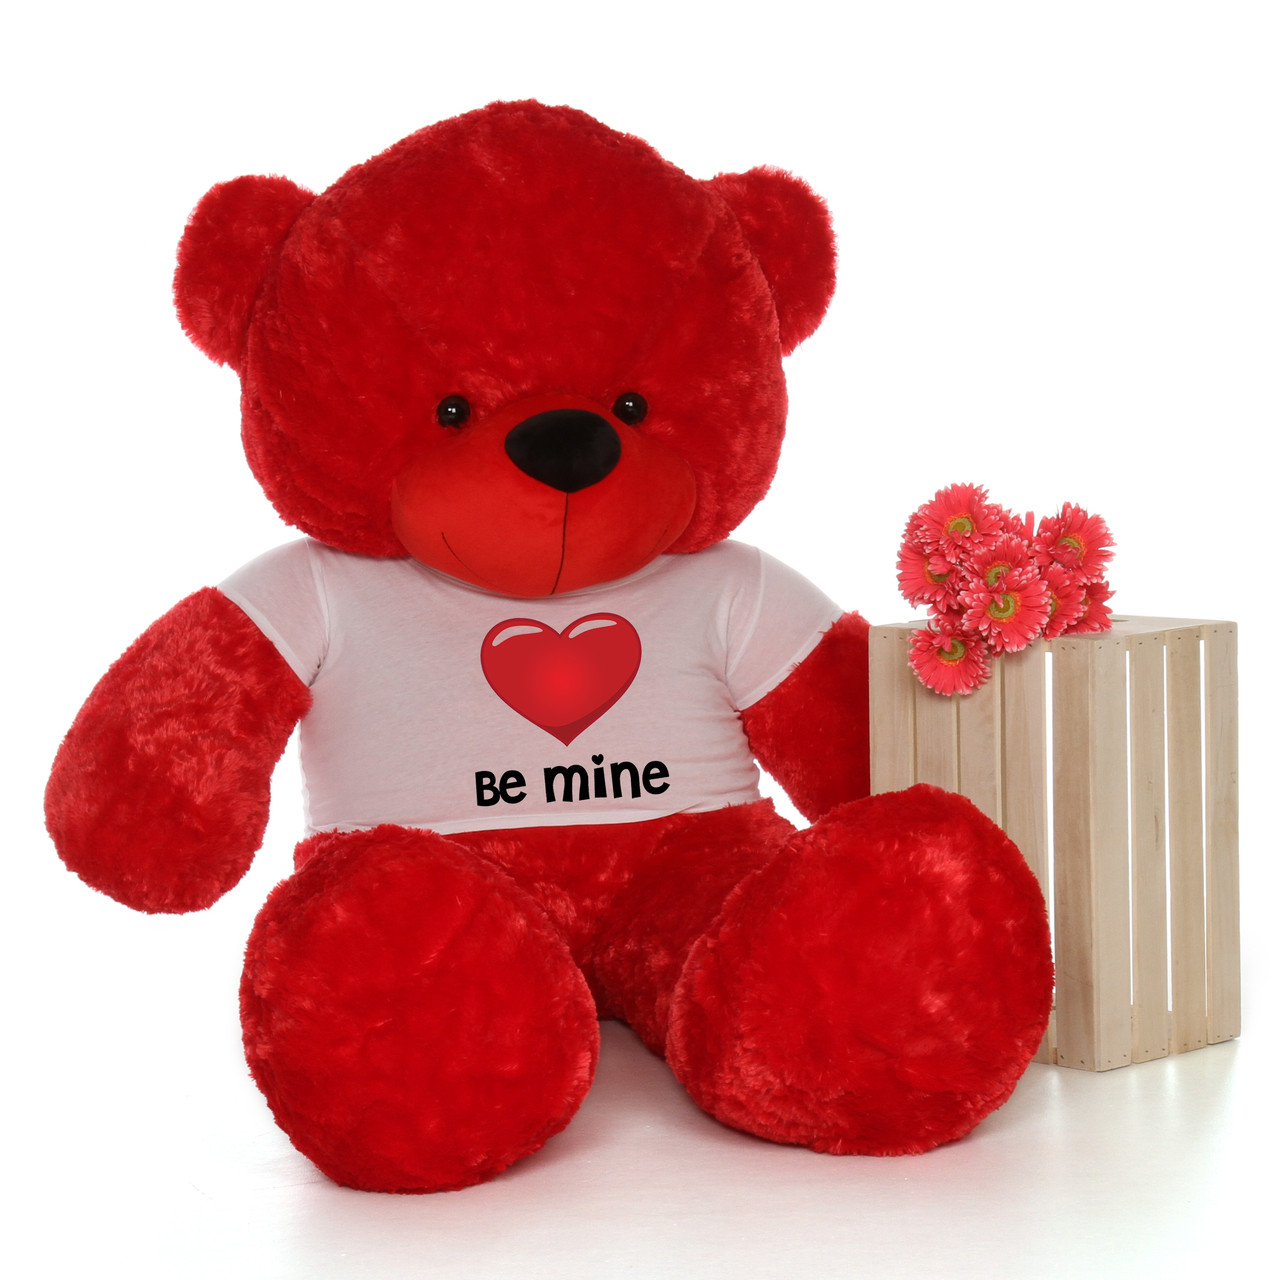 6ft life size valentines day teddy bears in be mine red heart shirts customize your fur color - Giant Teddy Bear For Valentines Day